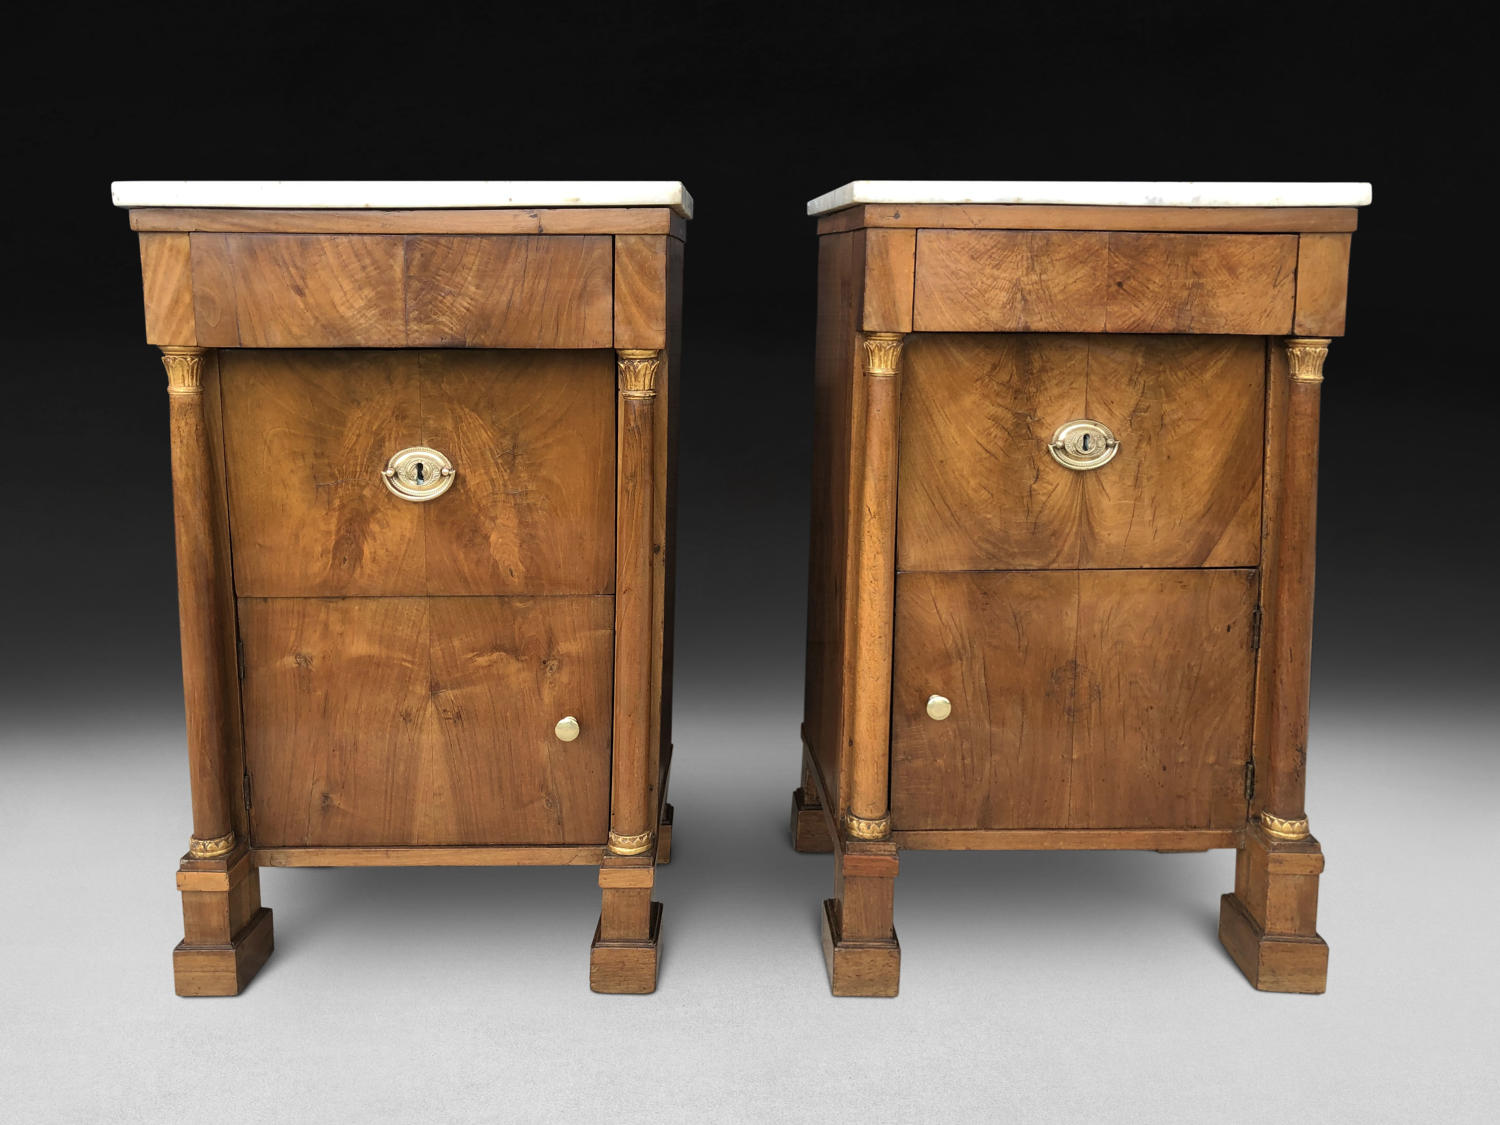 A PAIR OF WALNUT COMMODINI ITALY C. 1800